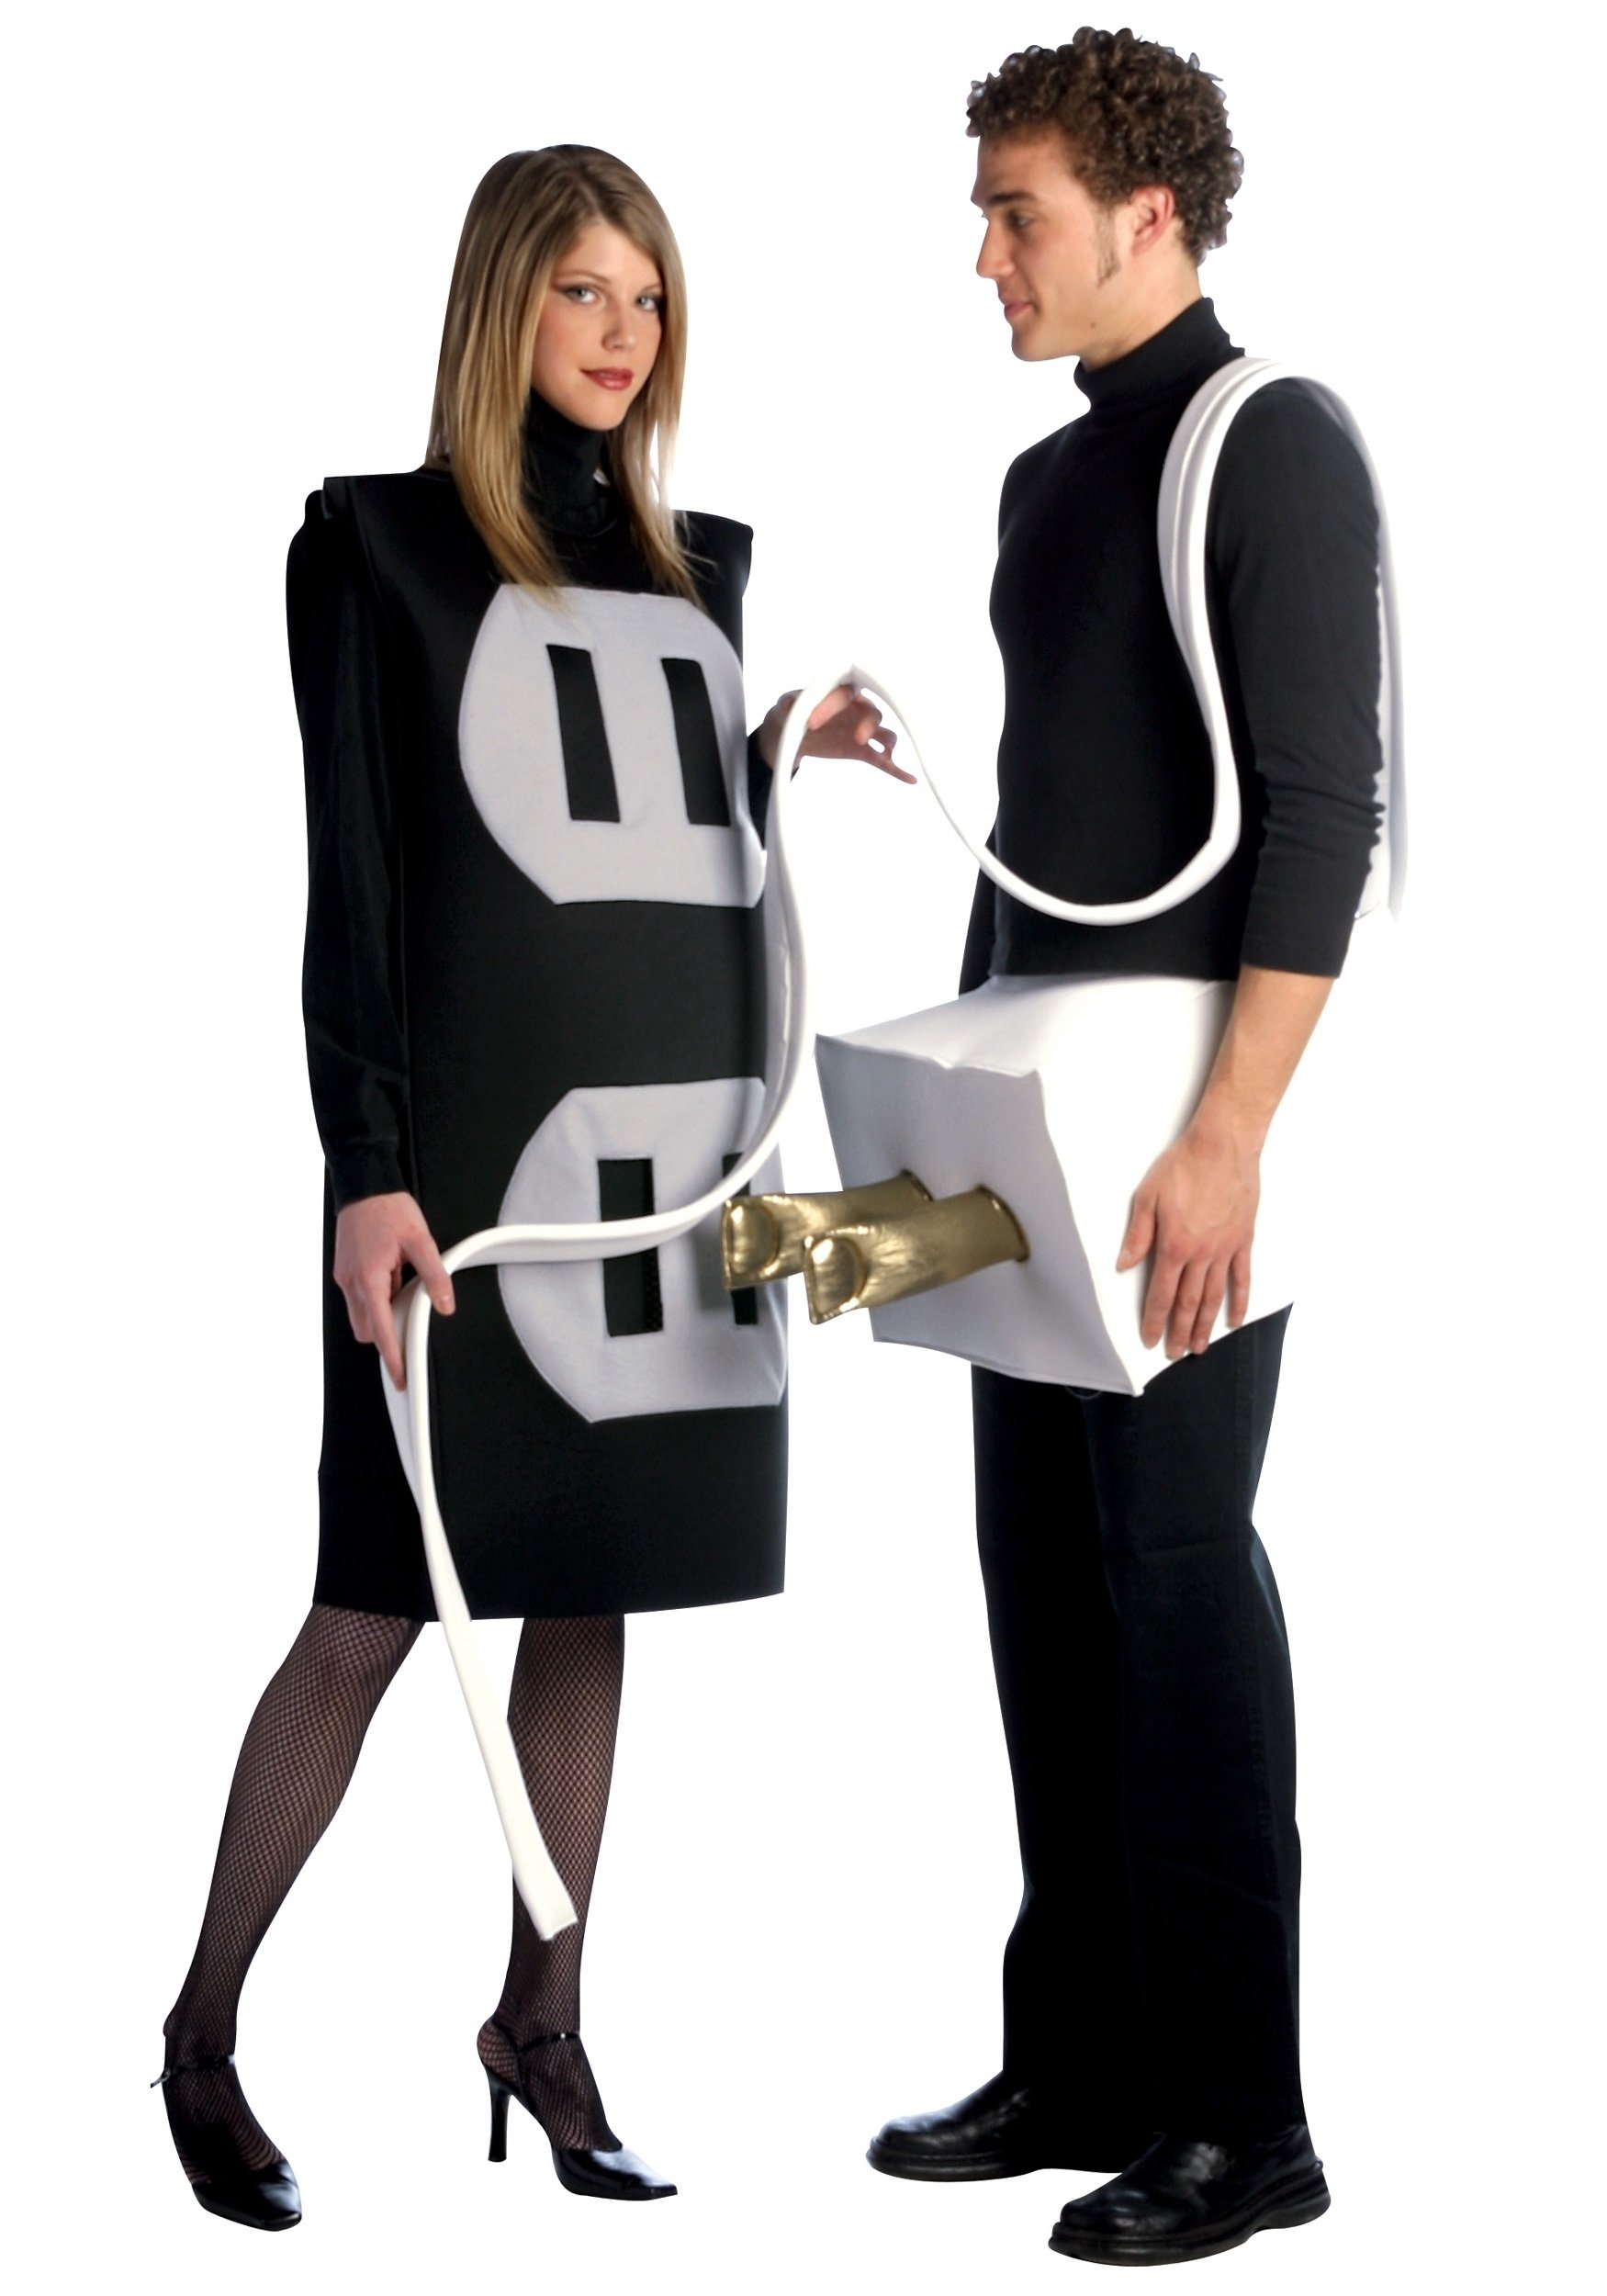 10 Stylish Ideas For Halloween Costumes For Women plug and socket costume funny couples costume ideas 3 2021